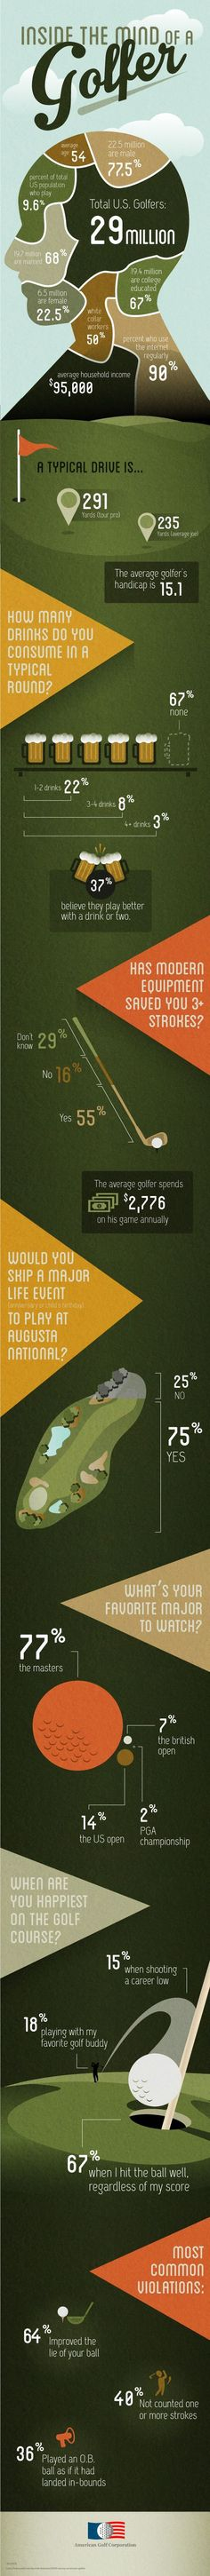 fundraising infographic : The Demographics of Golf- Inside the Mind of a Golfer (Infographic)